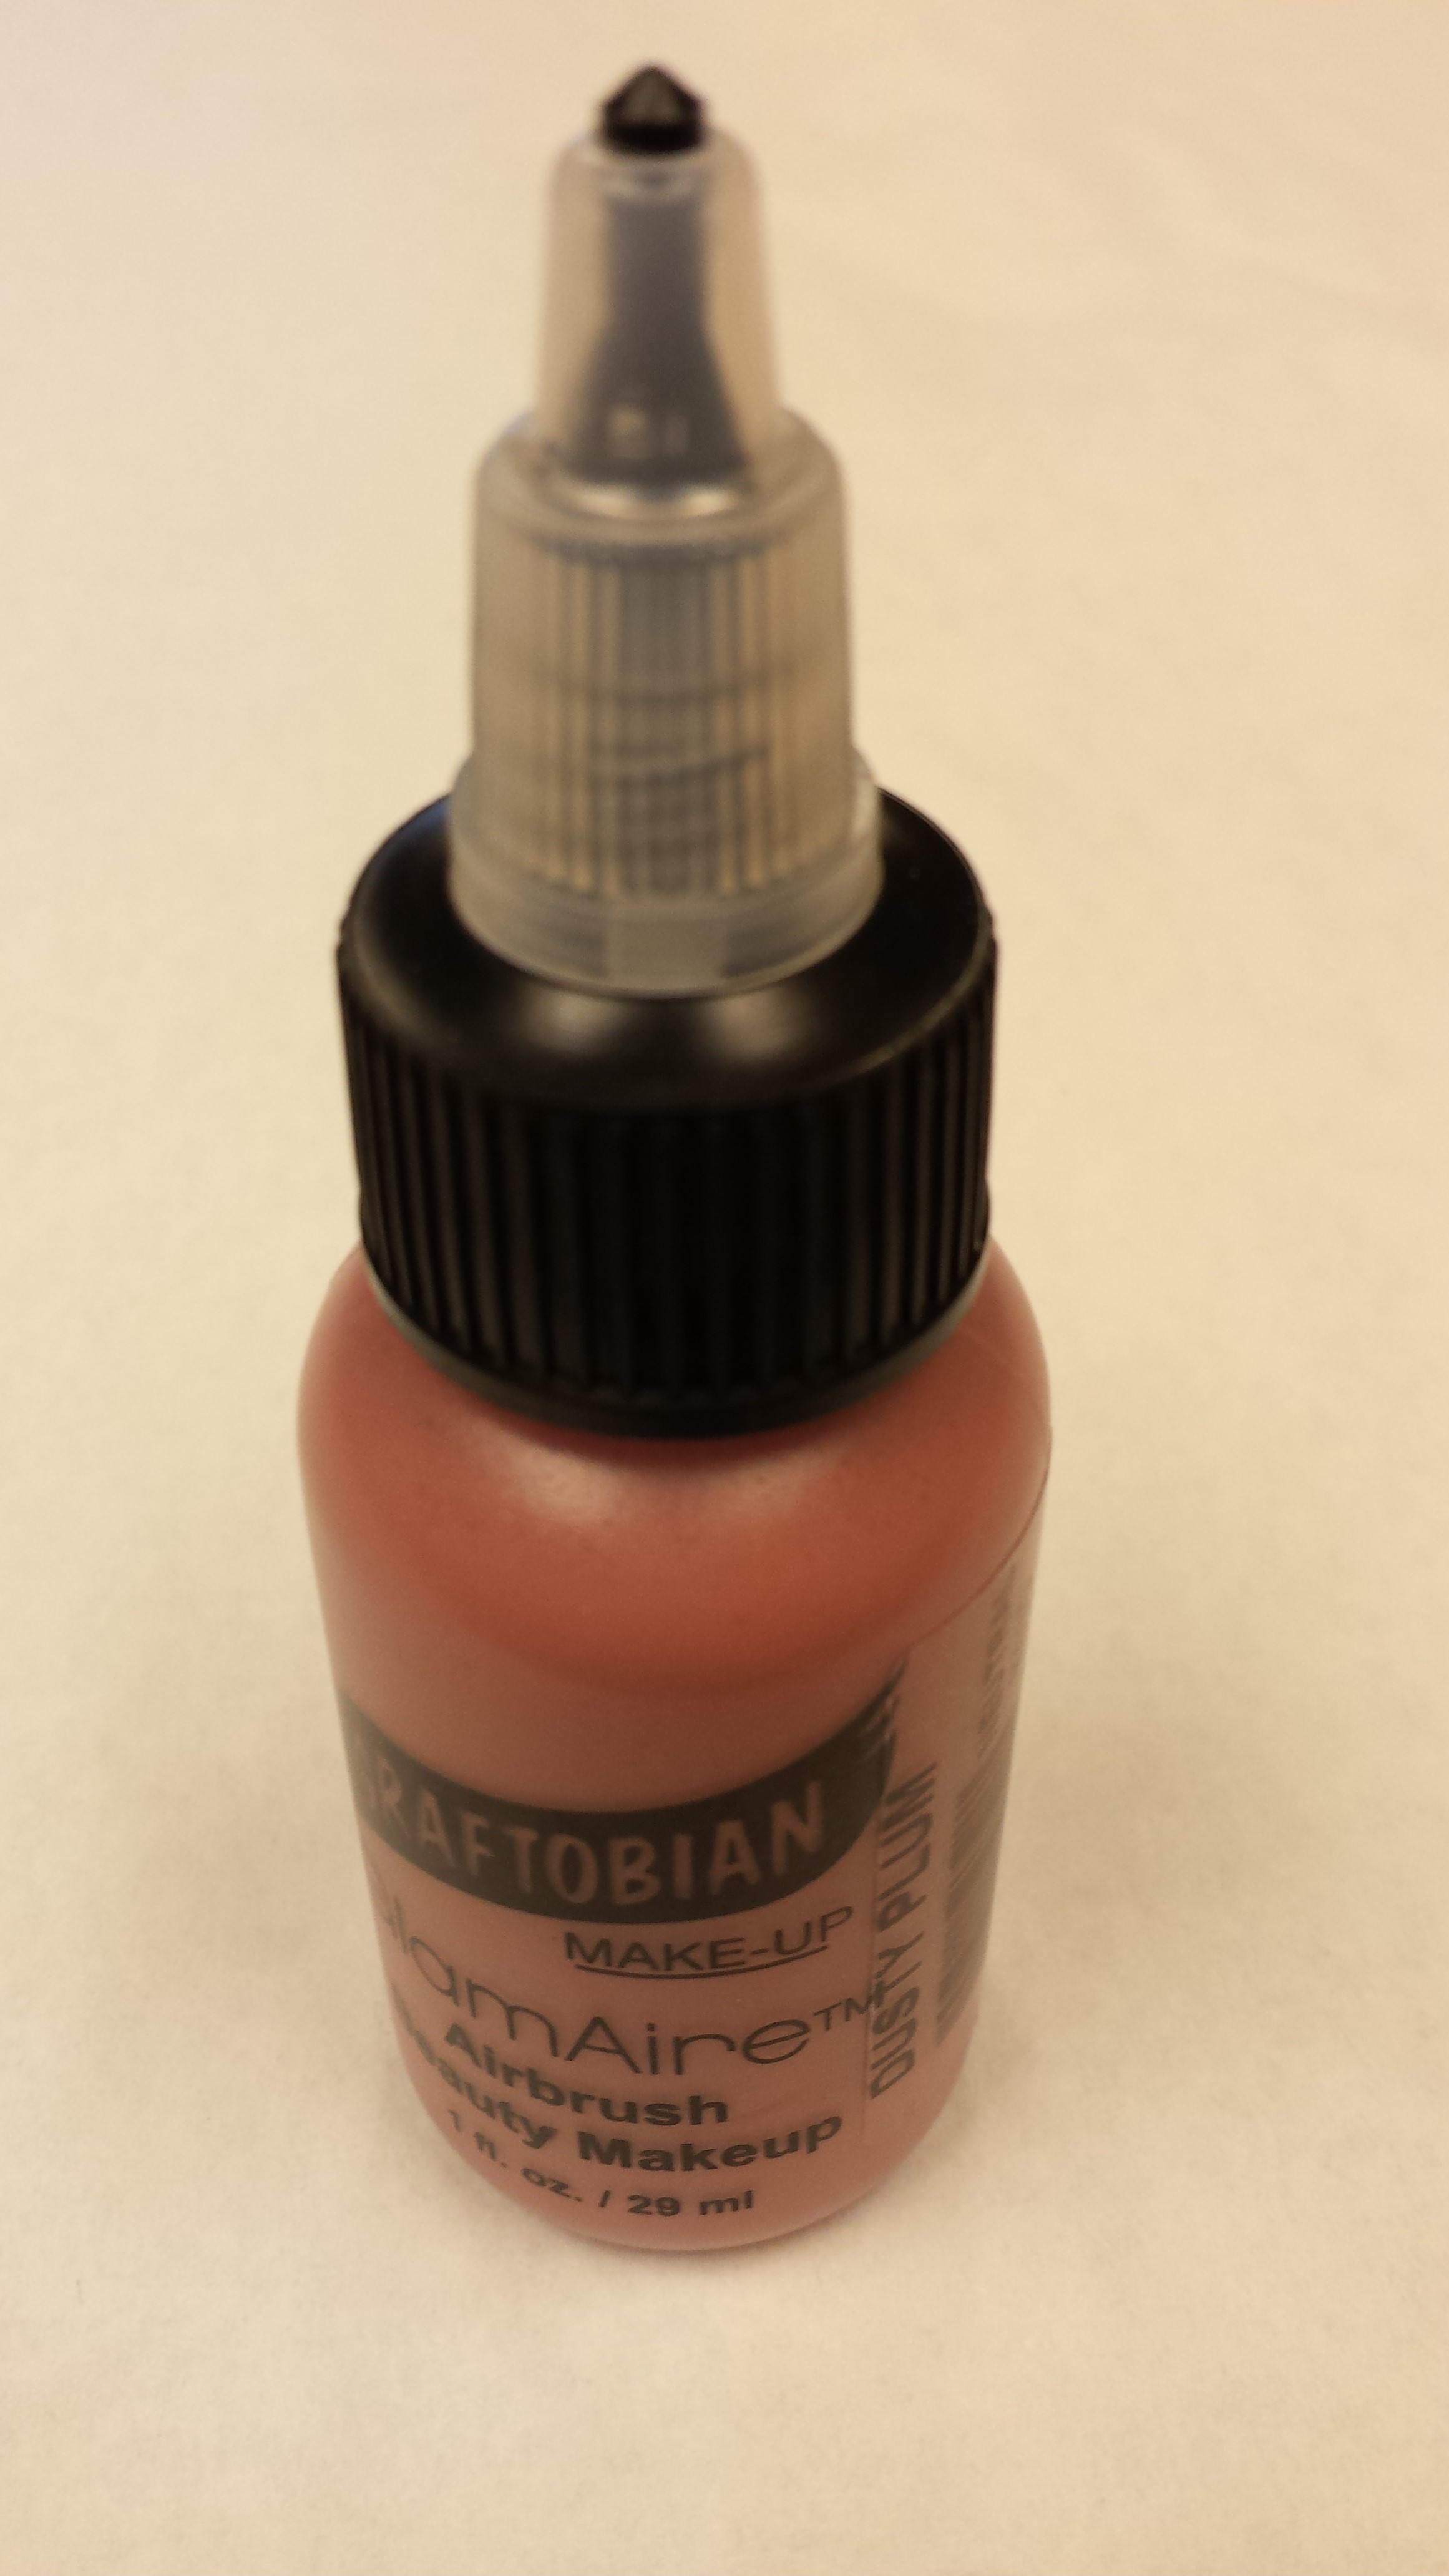 GlameAire HD AirBrush Make-up 1 oz. Bottle - Dusty Plum